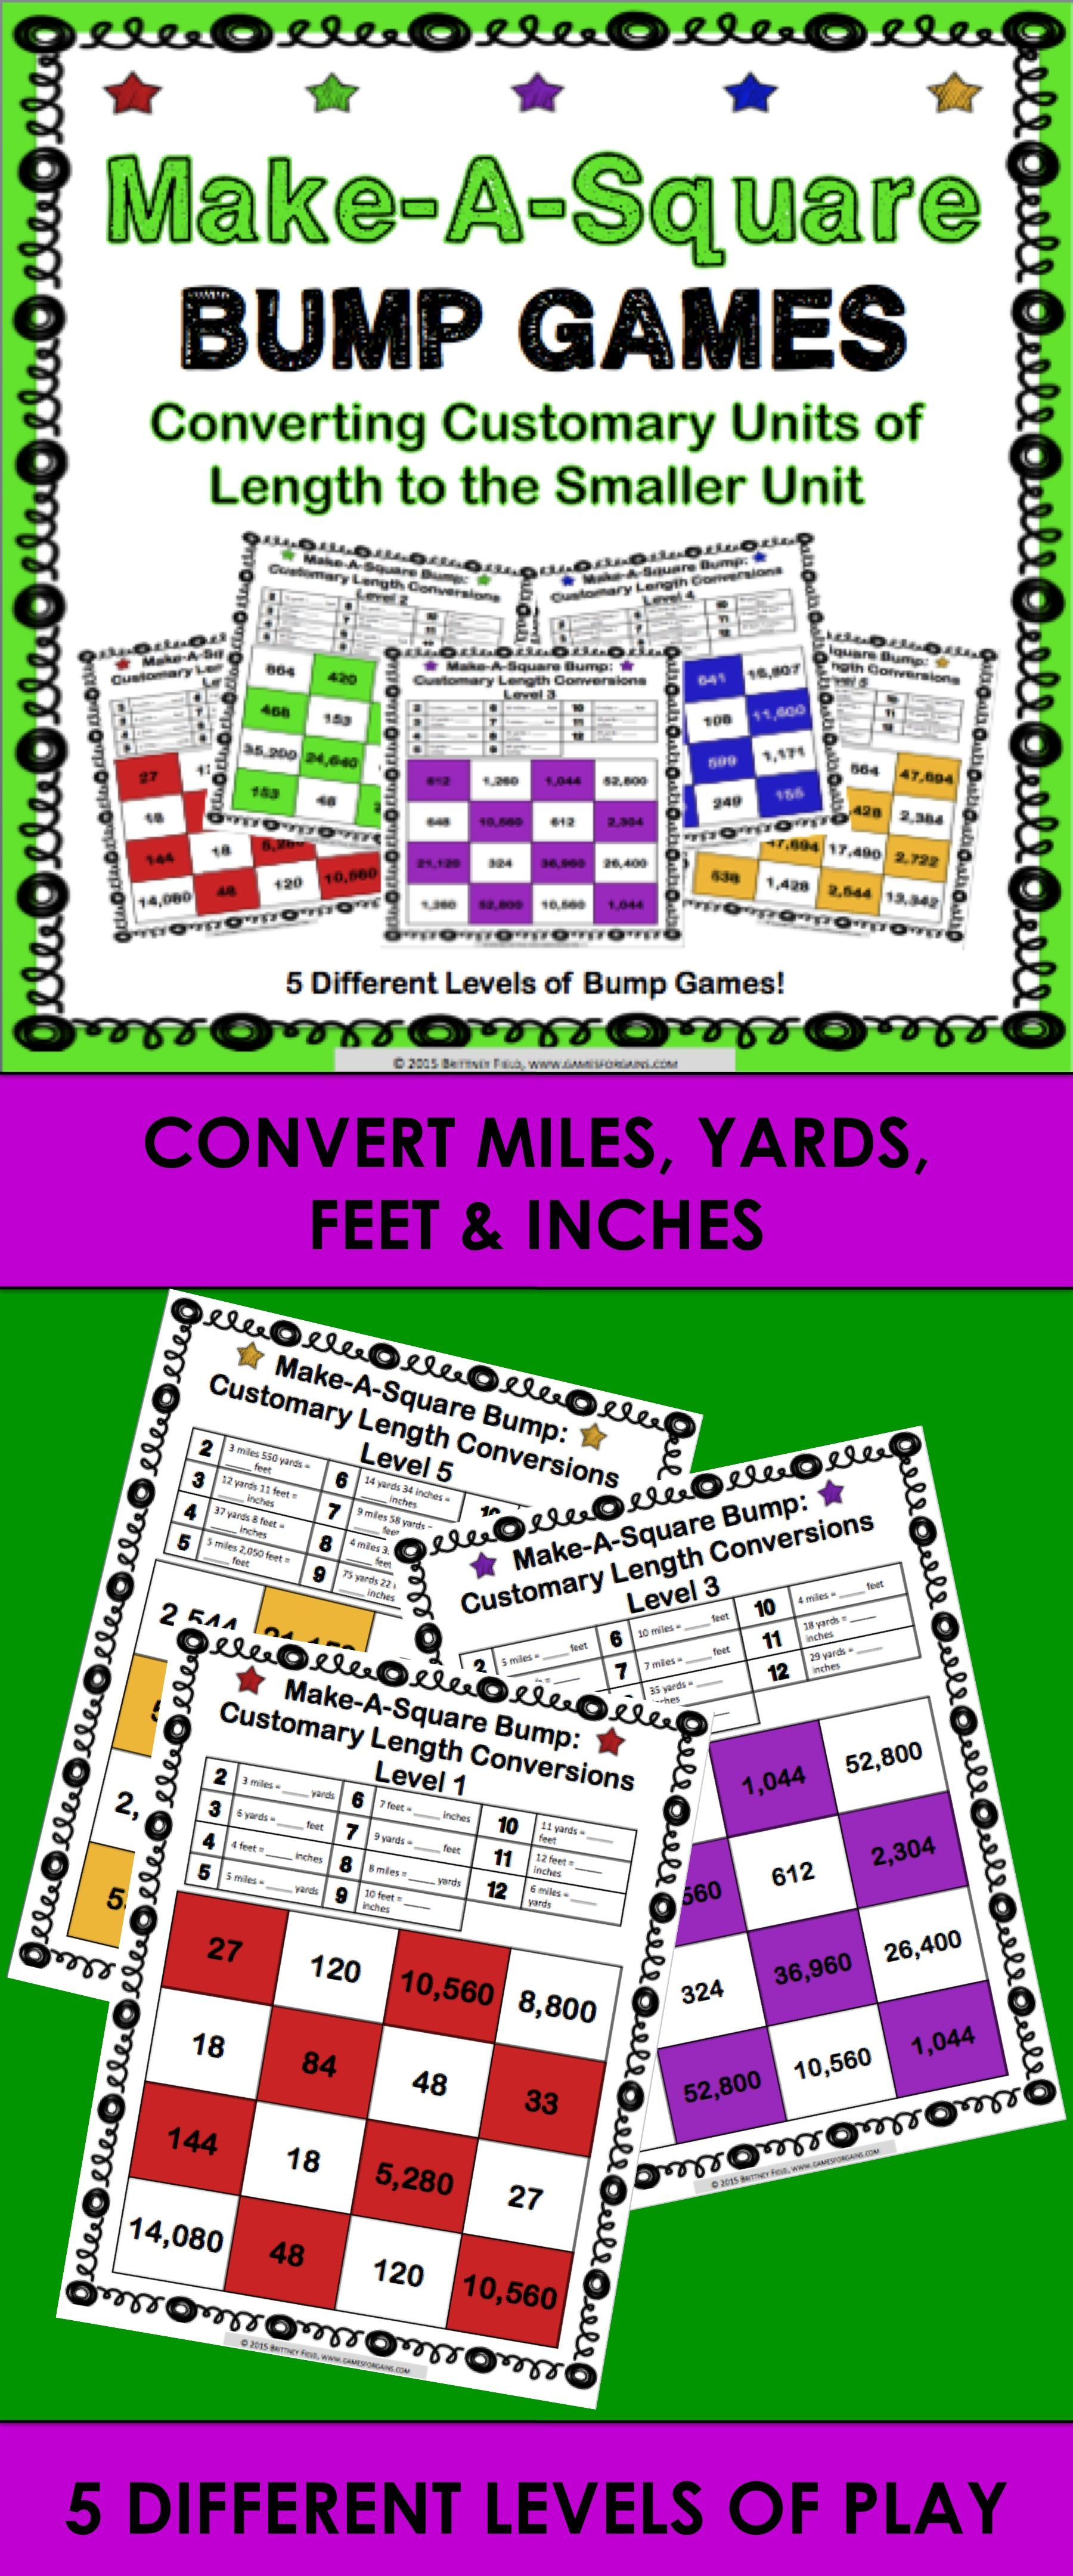 Customary Length Conversions Measurement Conversion Games